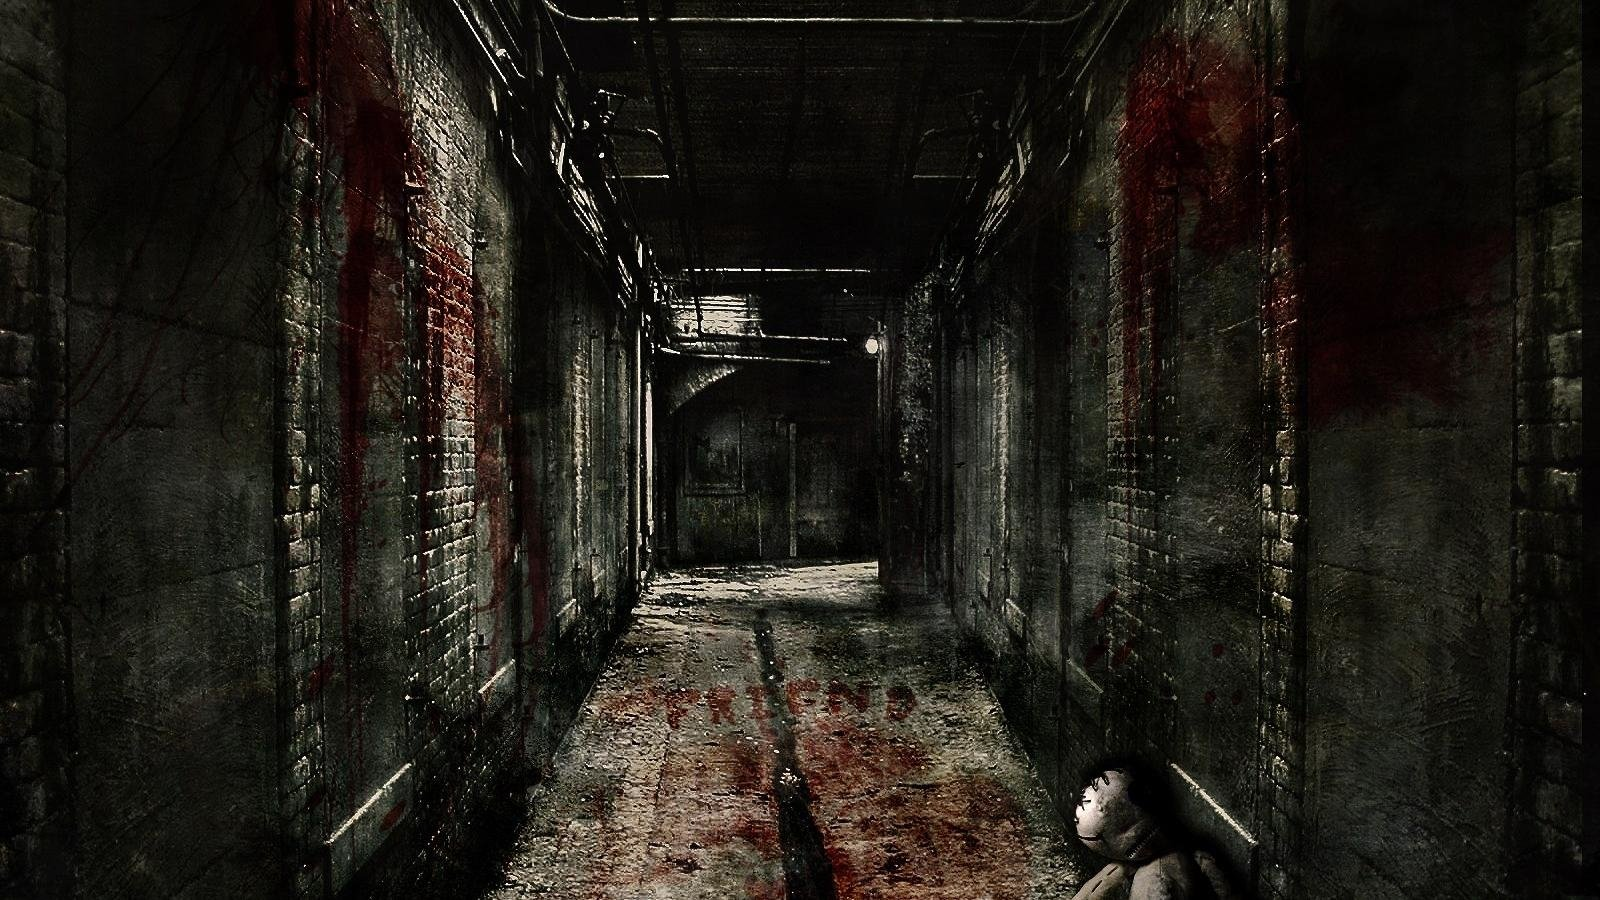 10 New Horror Movie Wallpaper Hd Full Hd 1920 1080 For Pc: Hallway Wallpaper And Background Image